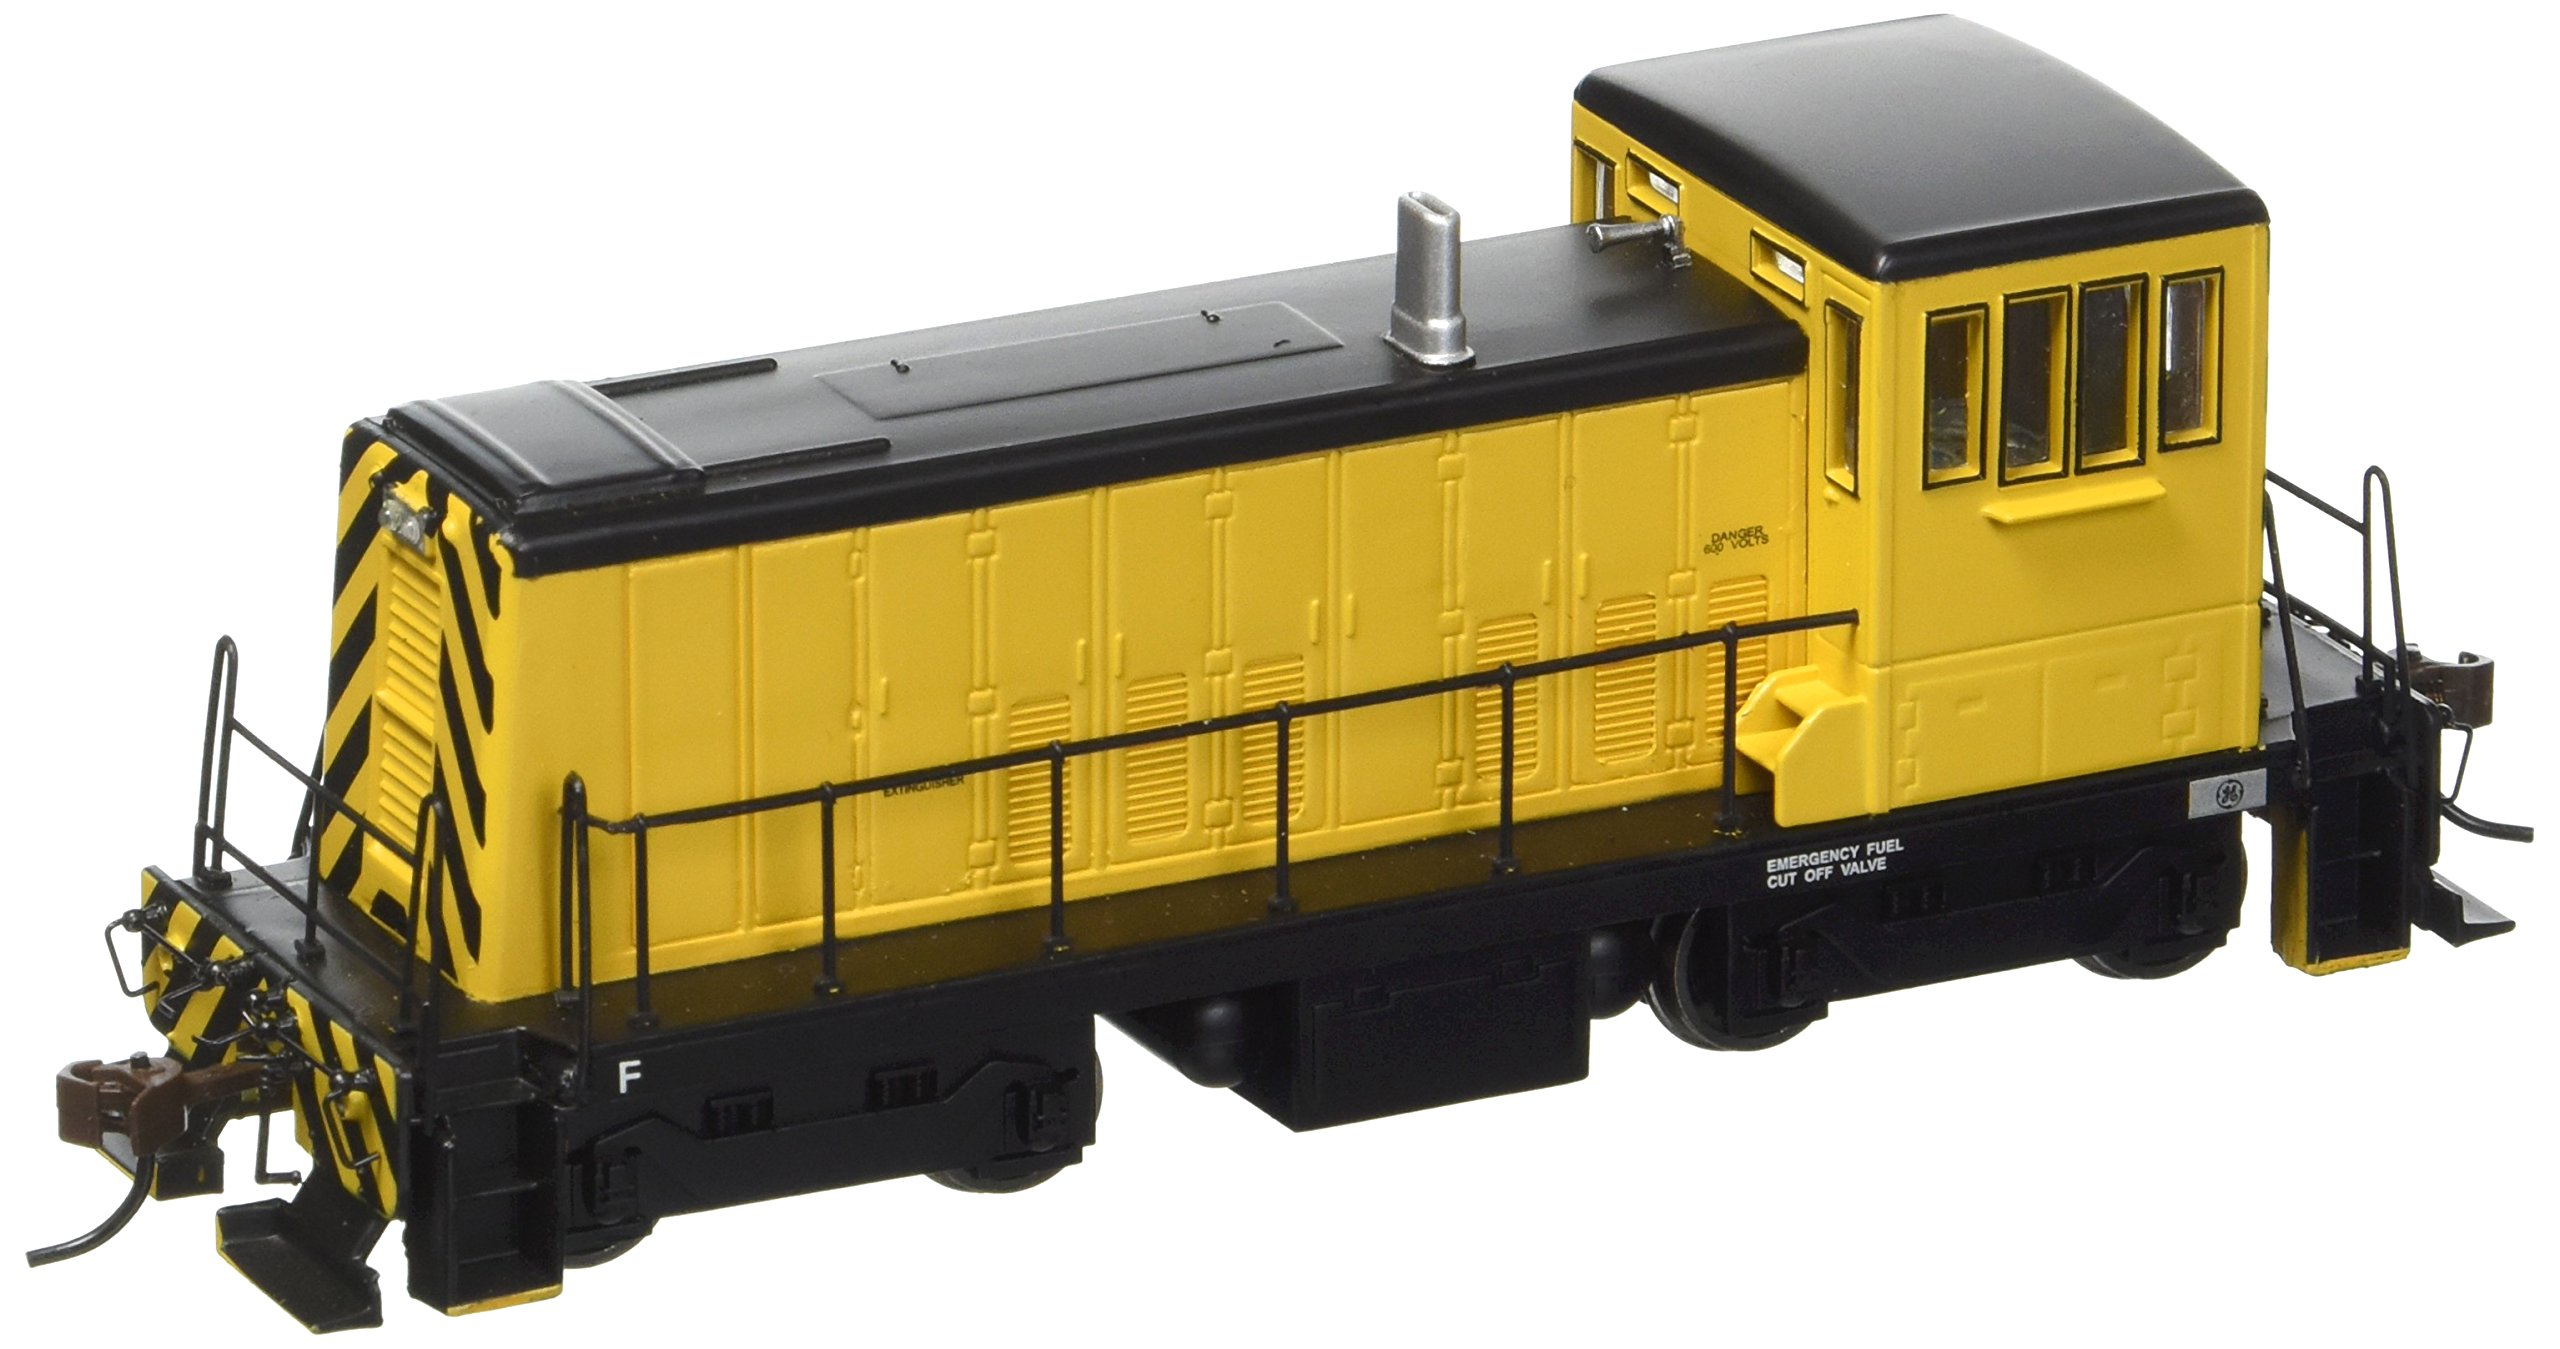 Bachmann GE 70 Ton Diesel Painted, Unlettered (Yellow and Black) Locomotive HO Scale, DCC On-Board